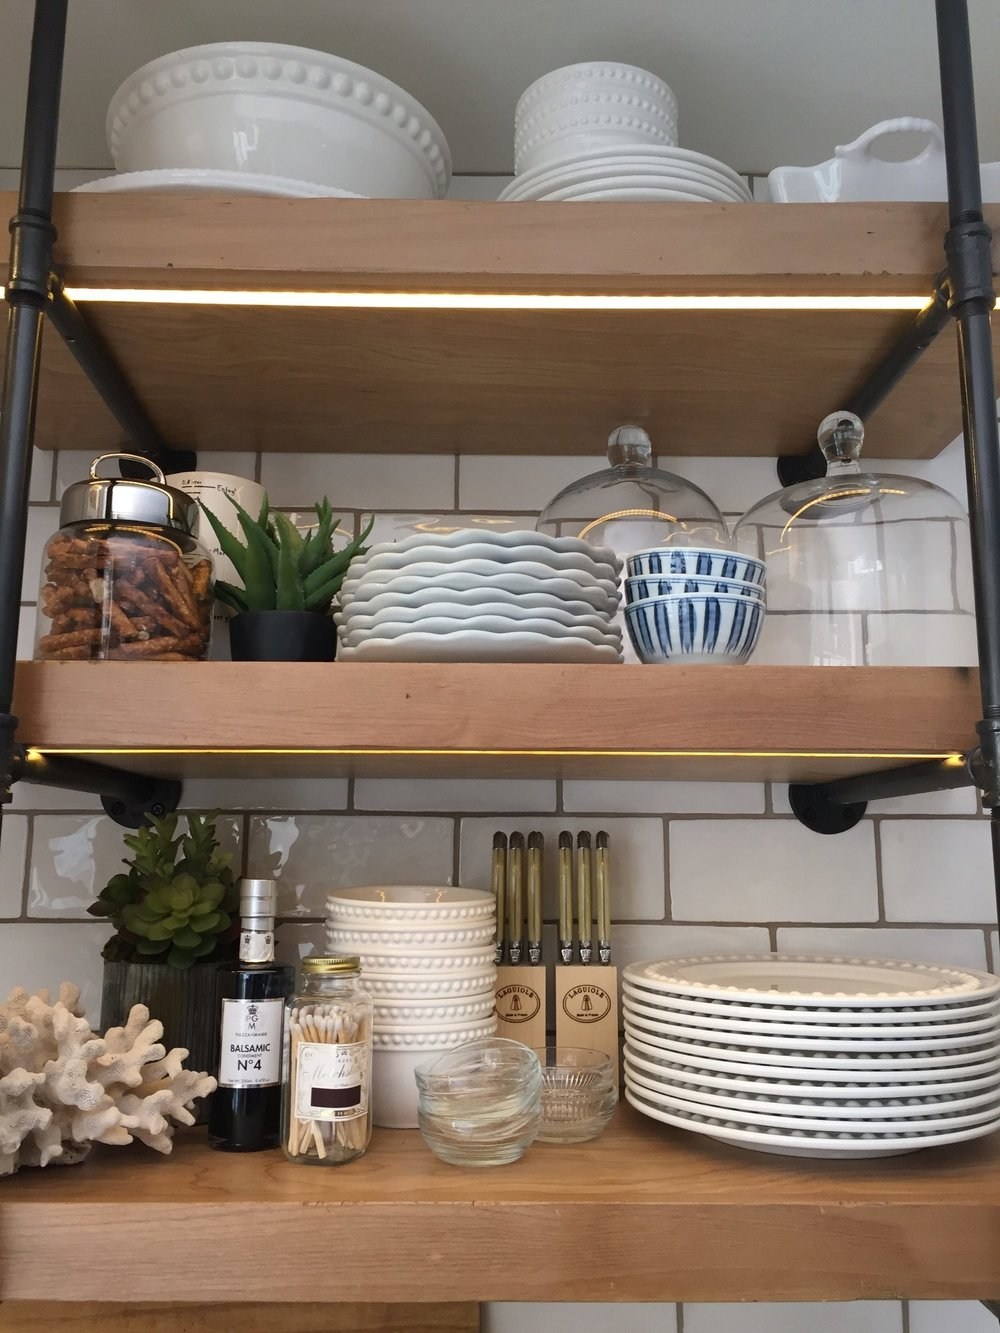 Restaurant style shelves flanking the stove